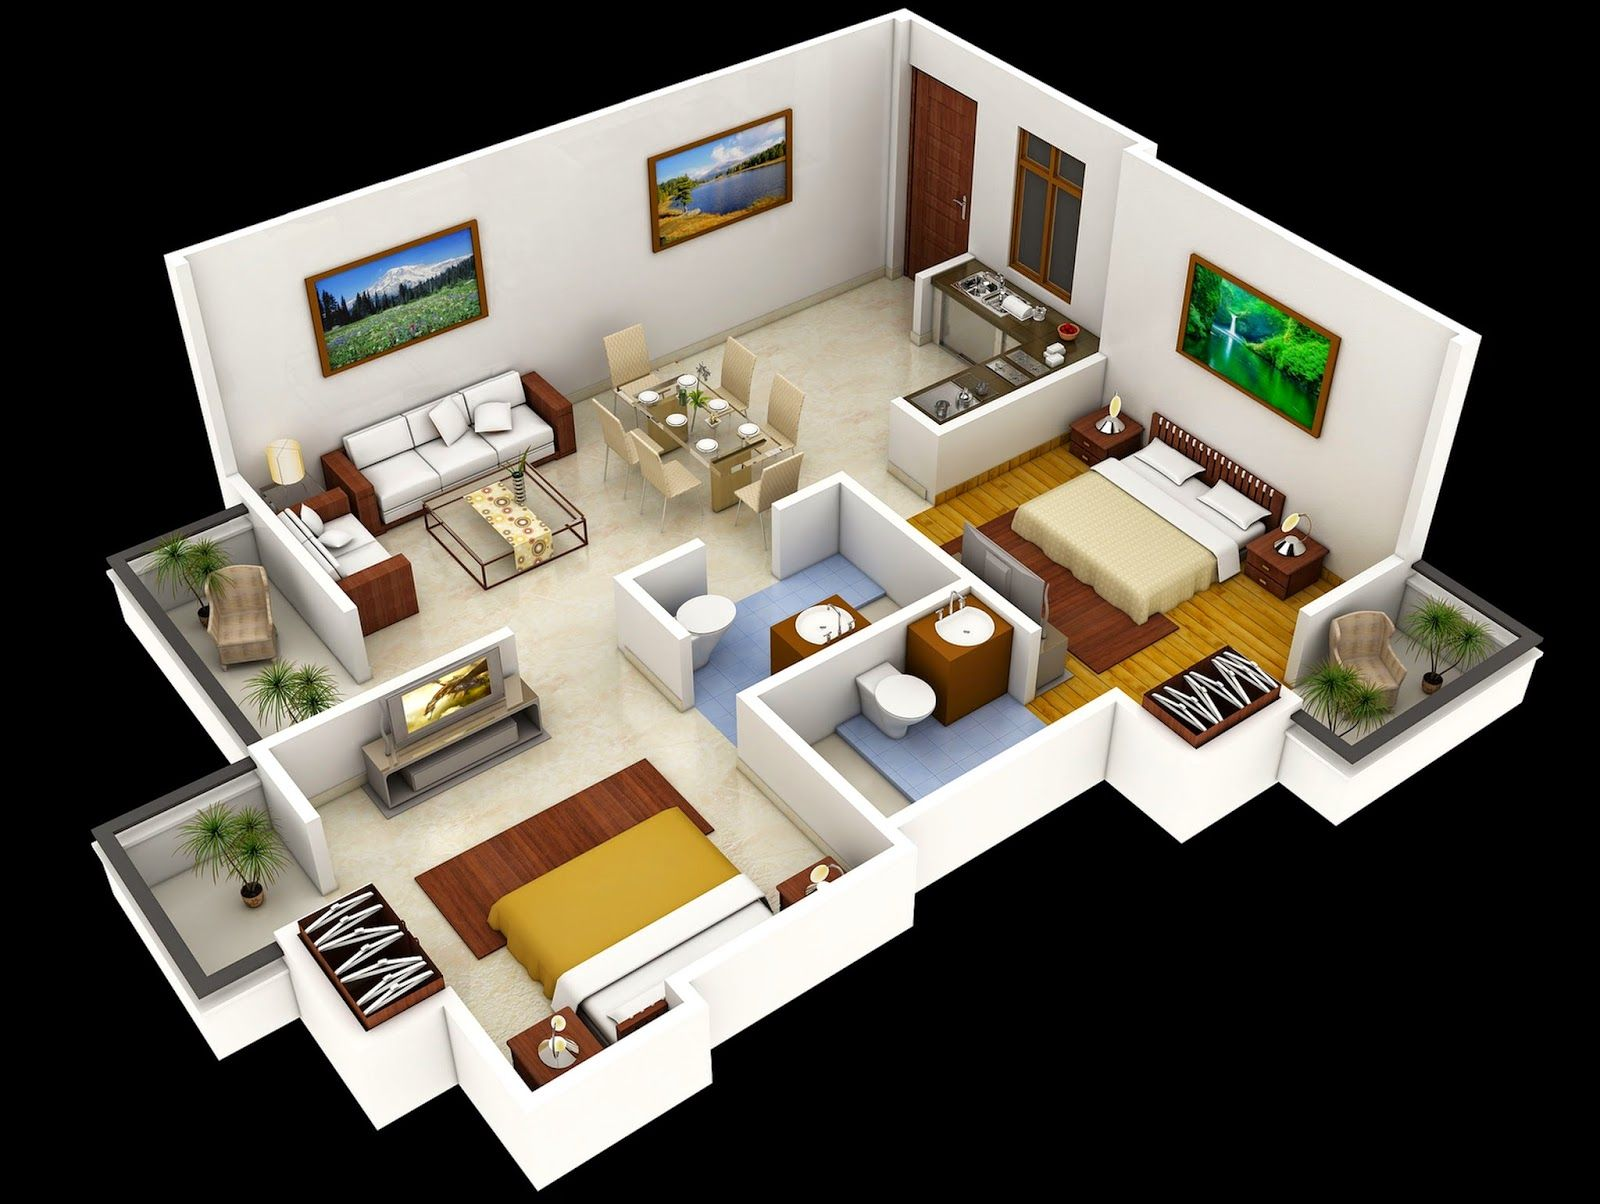 Related Two Bedroom House Interior Design Plan  Asi 1  Pinterest Magnificent 2 Bedroom House Interior Designs Design Decoration